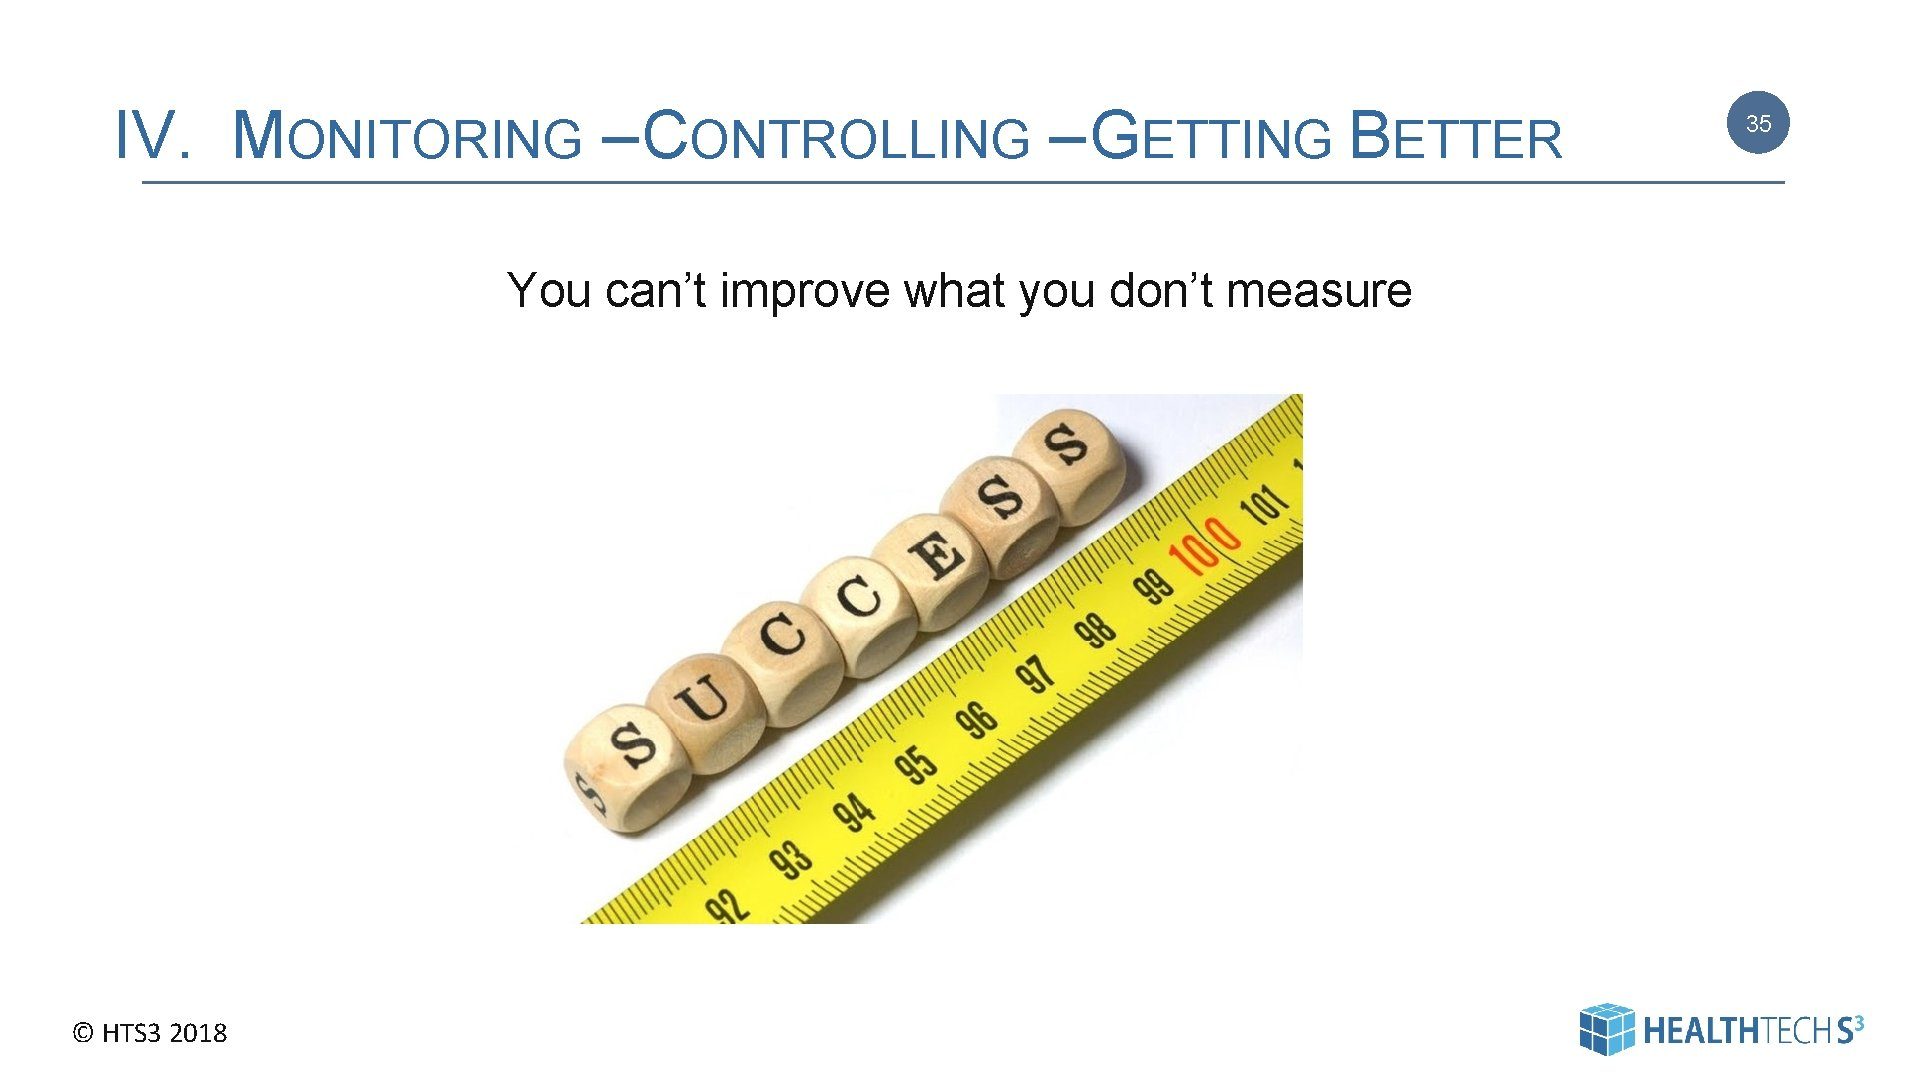 IV. MONITORING – CONTROLLING – GETTING BETTER You can't improve what you don't measure